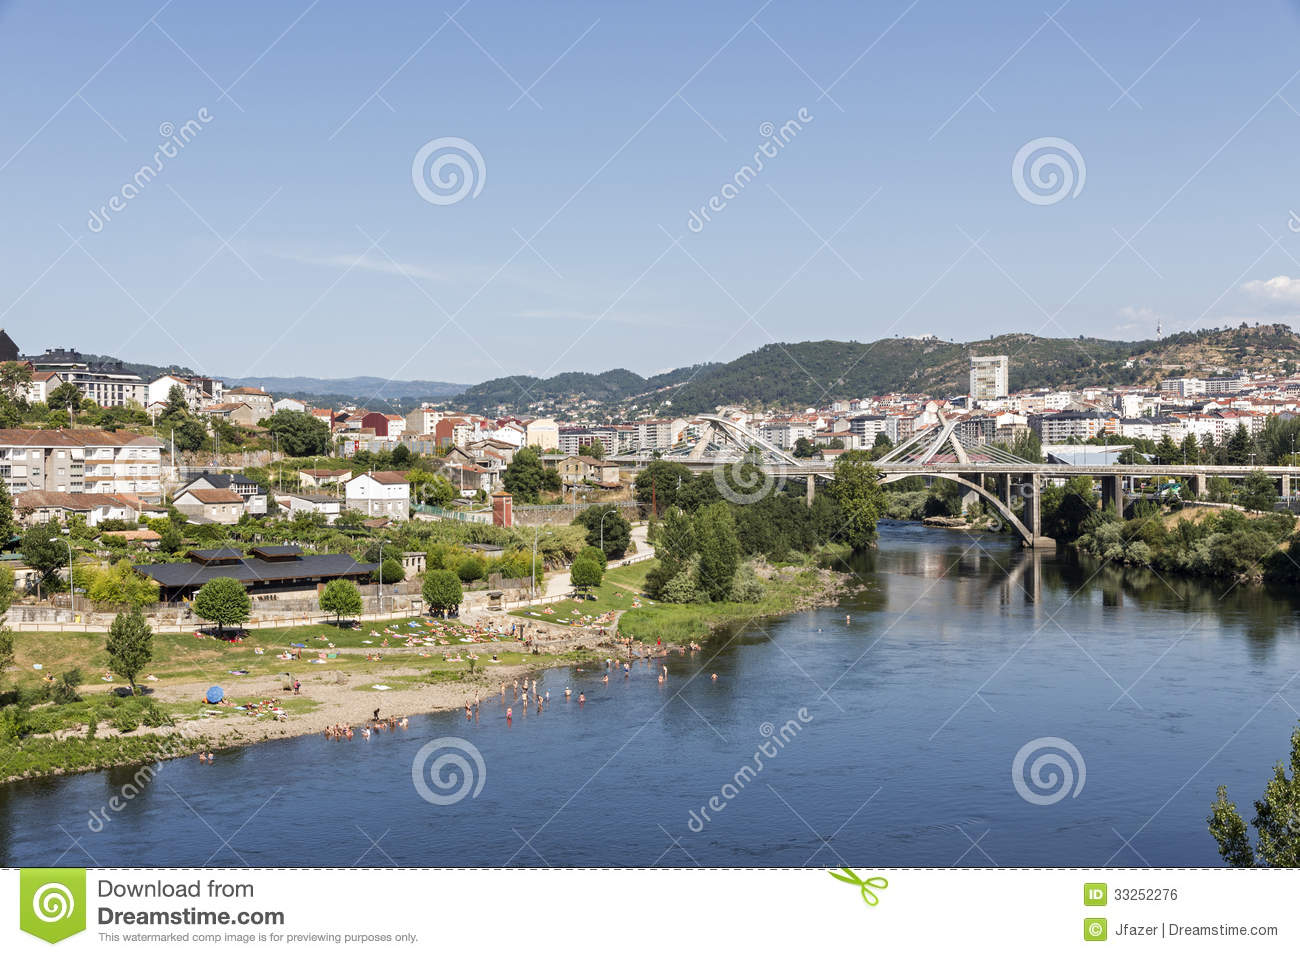 Ourense Spain  City pictures : Ourense, Galicia, Spain Royalty Free Stock Image Image: 33252276